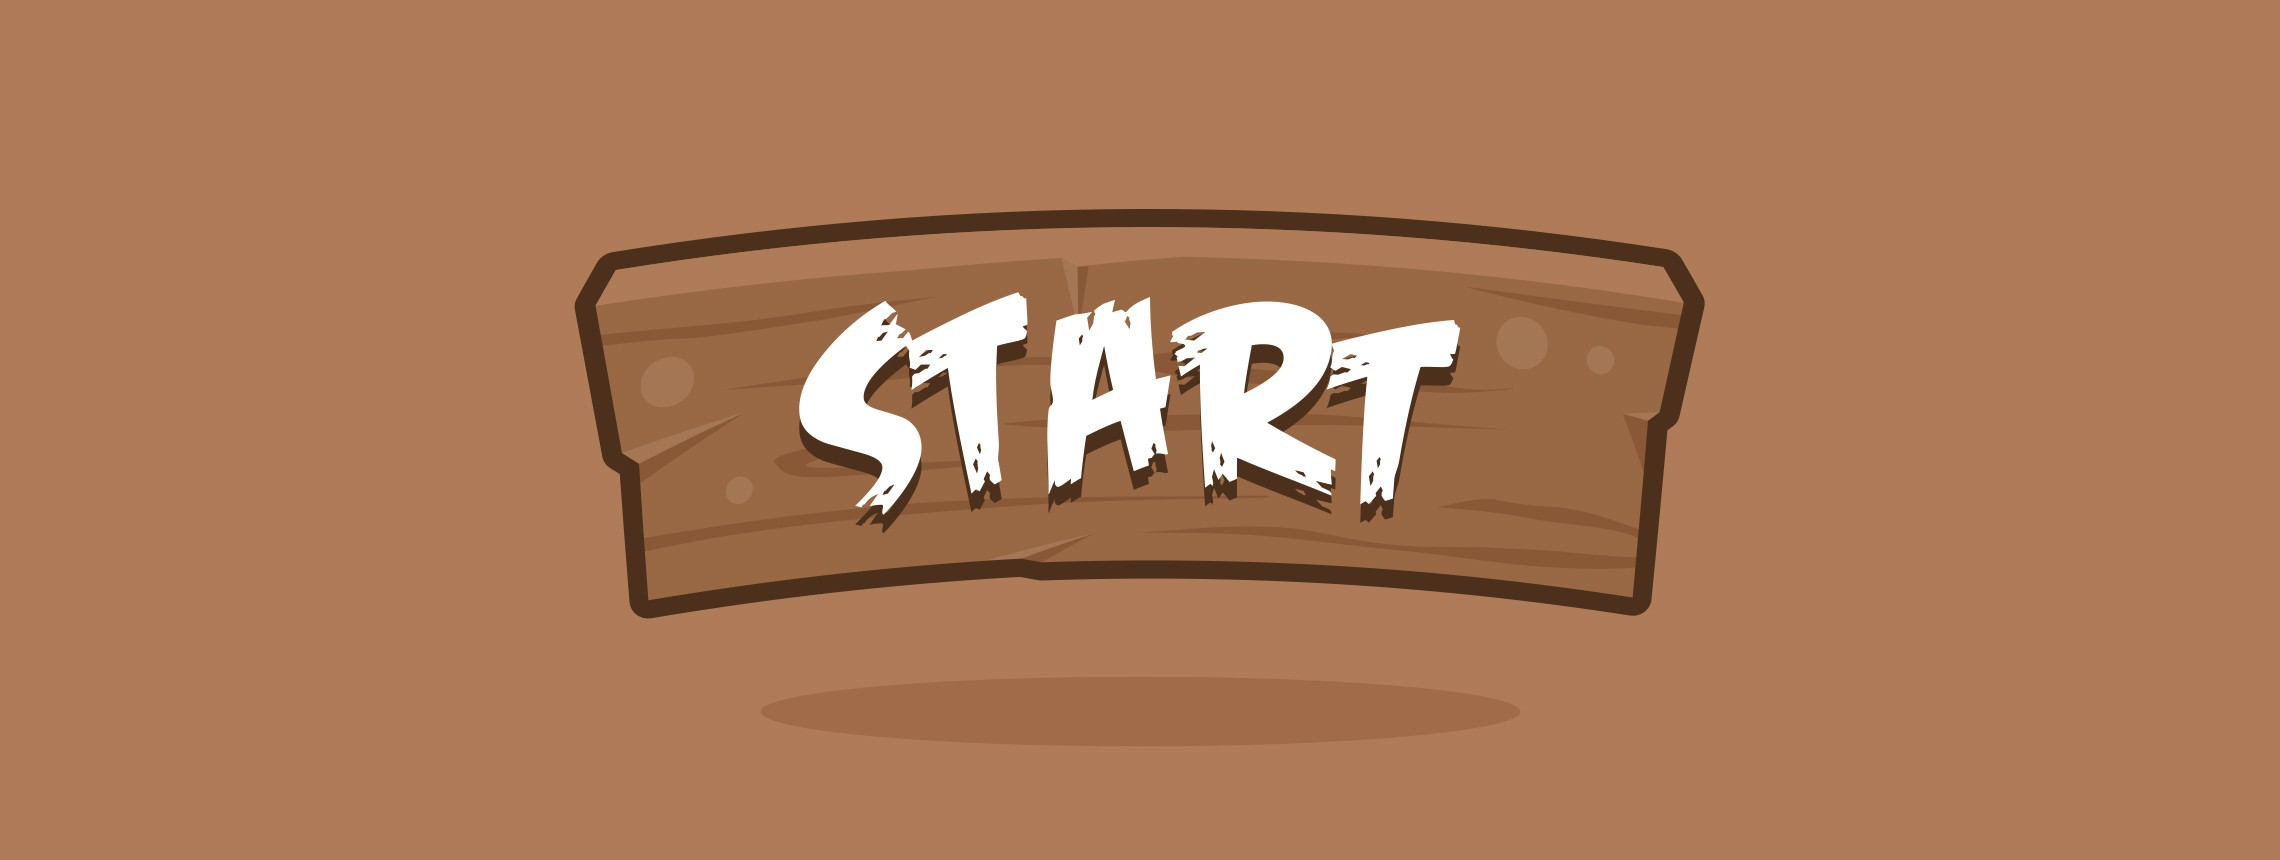 How to Create a Cartoon Style Wood Button for Games